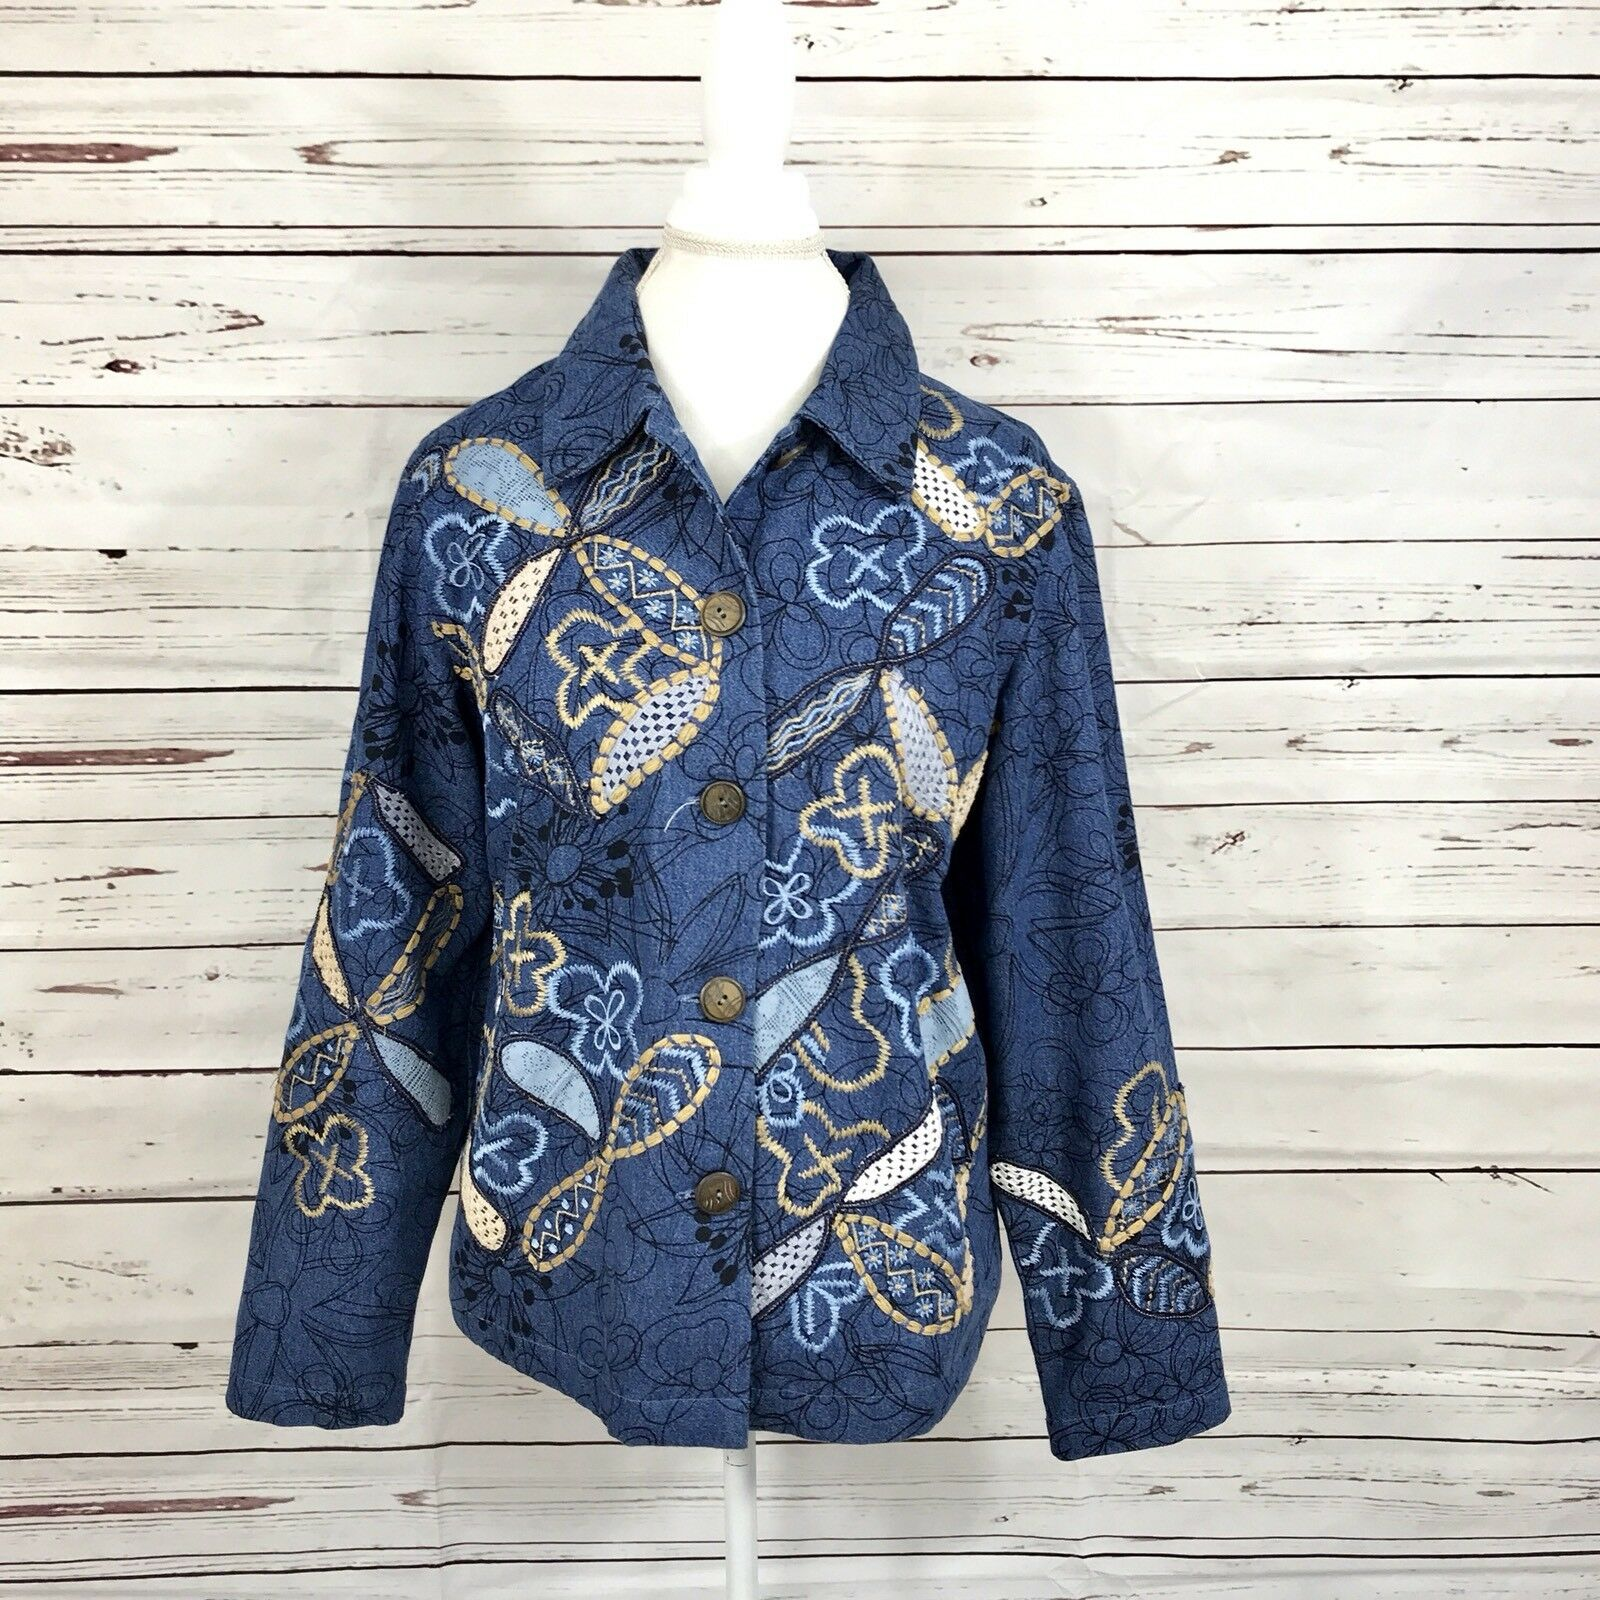 Coldwater creek blazer bluee denim butterfly theme lined career size M